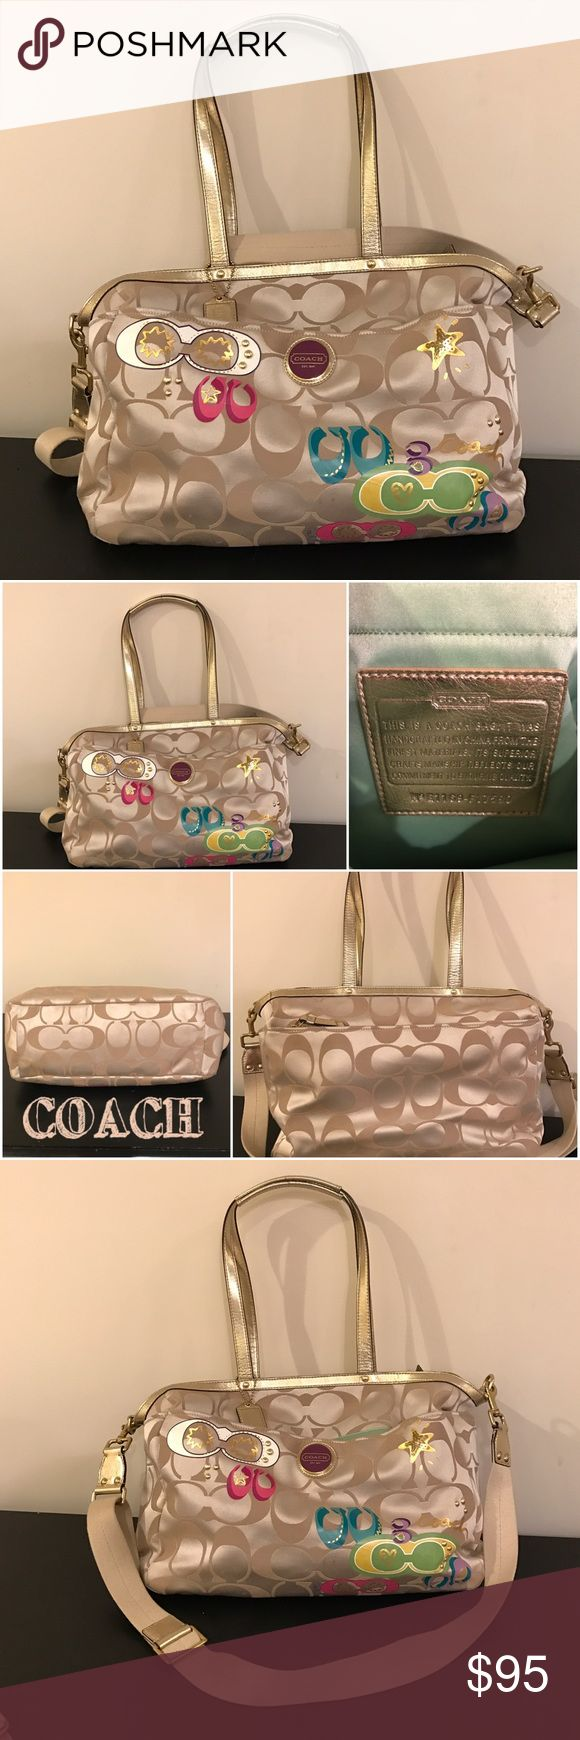 """🔥LAST CHANCE🔥 COACH travel/diaper bag **LAST CHANCE** Multiple offers, BUY NOW, or submit an offer I can't refuse!! .....COACH cream diaper/travel bag. GREAT condition, a few marks on back side cleanable. (See pictures) Very clean on the inside!  Used previously as a diaper bag, then travel bag. Lots of pockets inside!!!! Also has a cross strap. Comes with clean matching diaper pad.  🔸Size: Medium/Large 🔸Measurements: Approx. 16x7x11; strap is 10"""". 🔸Color: Cream/Multi-color  No trades…"""